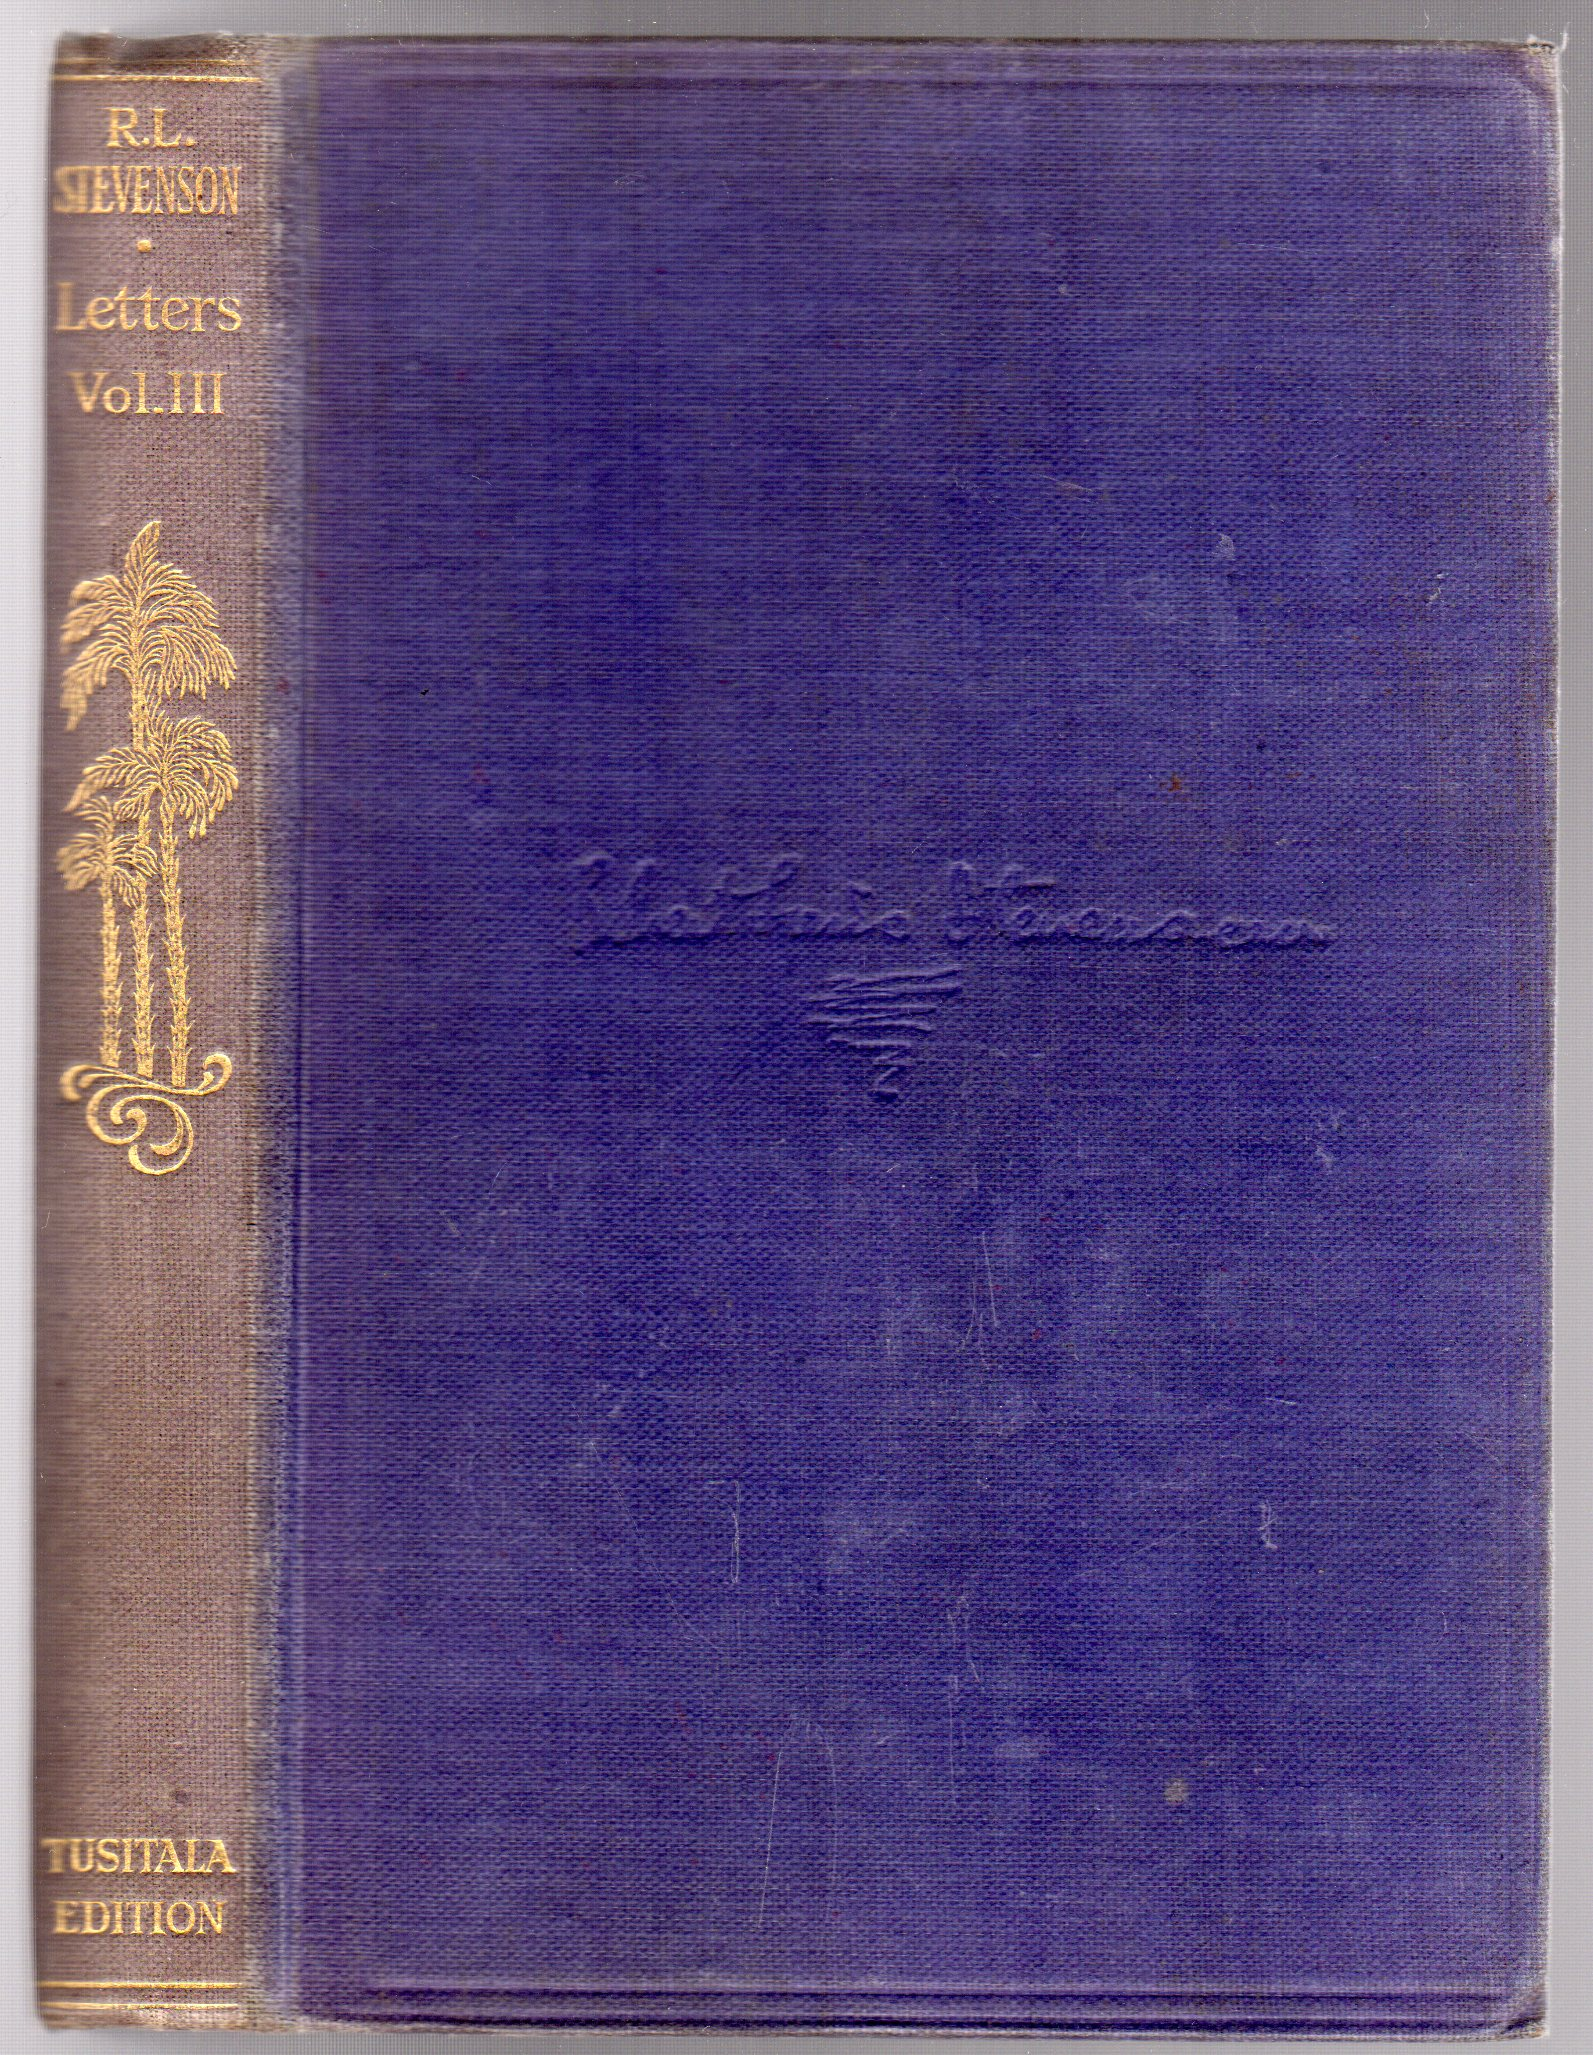 Image for The Works of Robert Louis Stevenson: Vol. XXXIII: The Letters of Robert Louis Stevenson: Volume Three